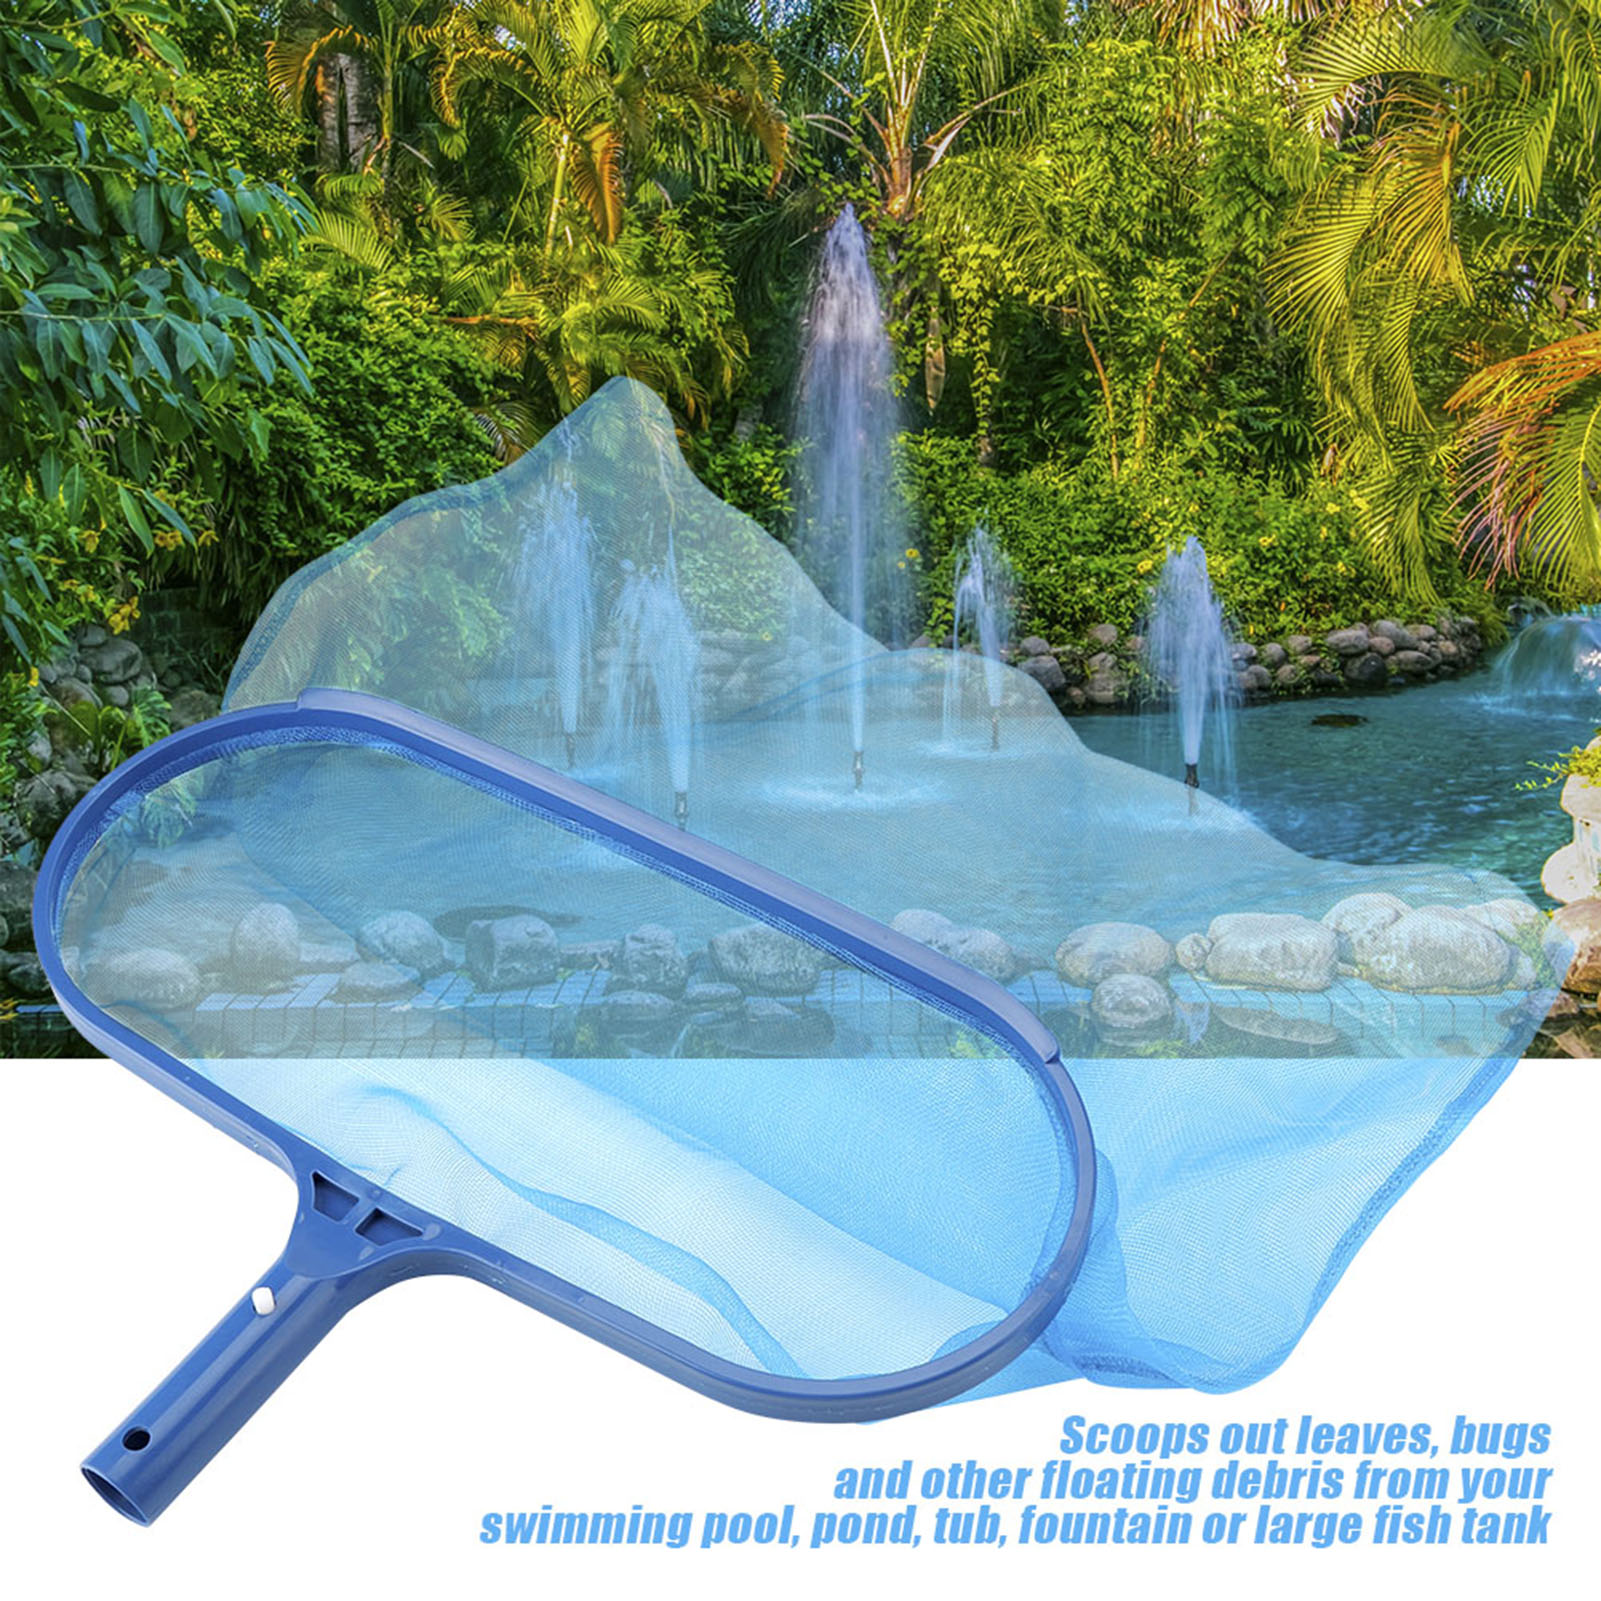 Details about Swimming Pool Clean Leaf Skimmer Rake Net Duty Leaves Bag  Durable Shallow & Deep